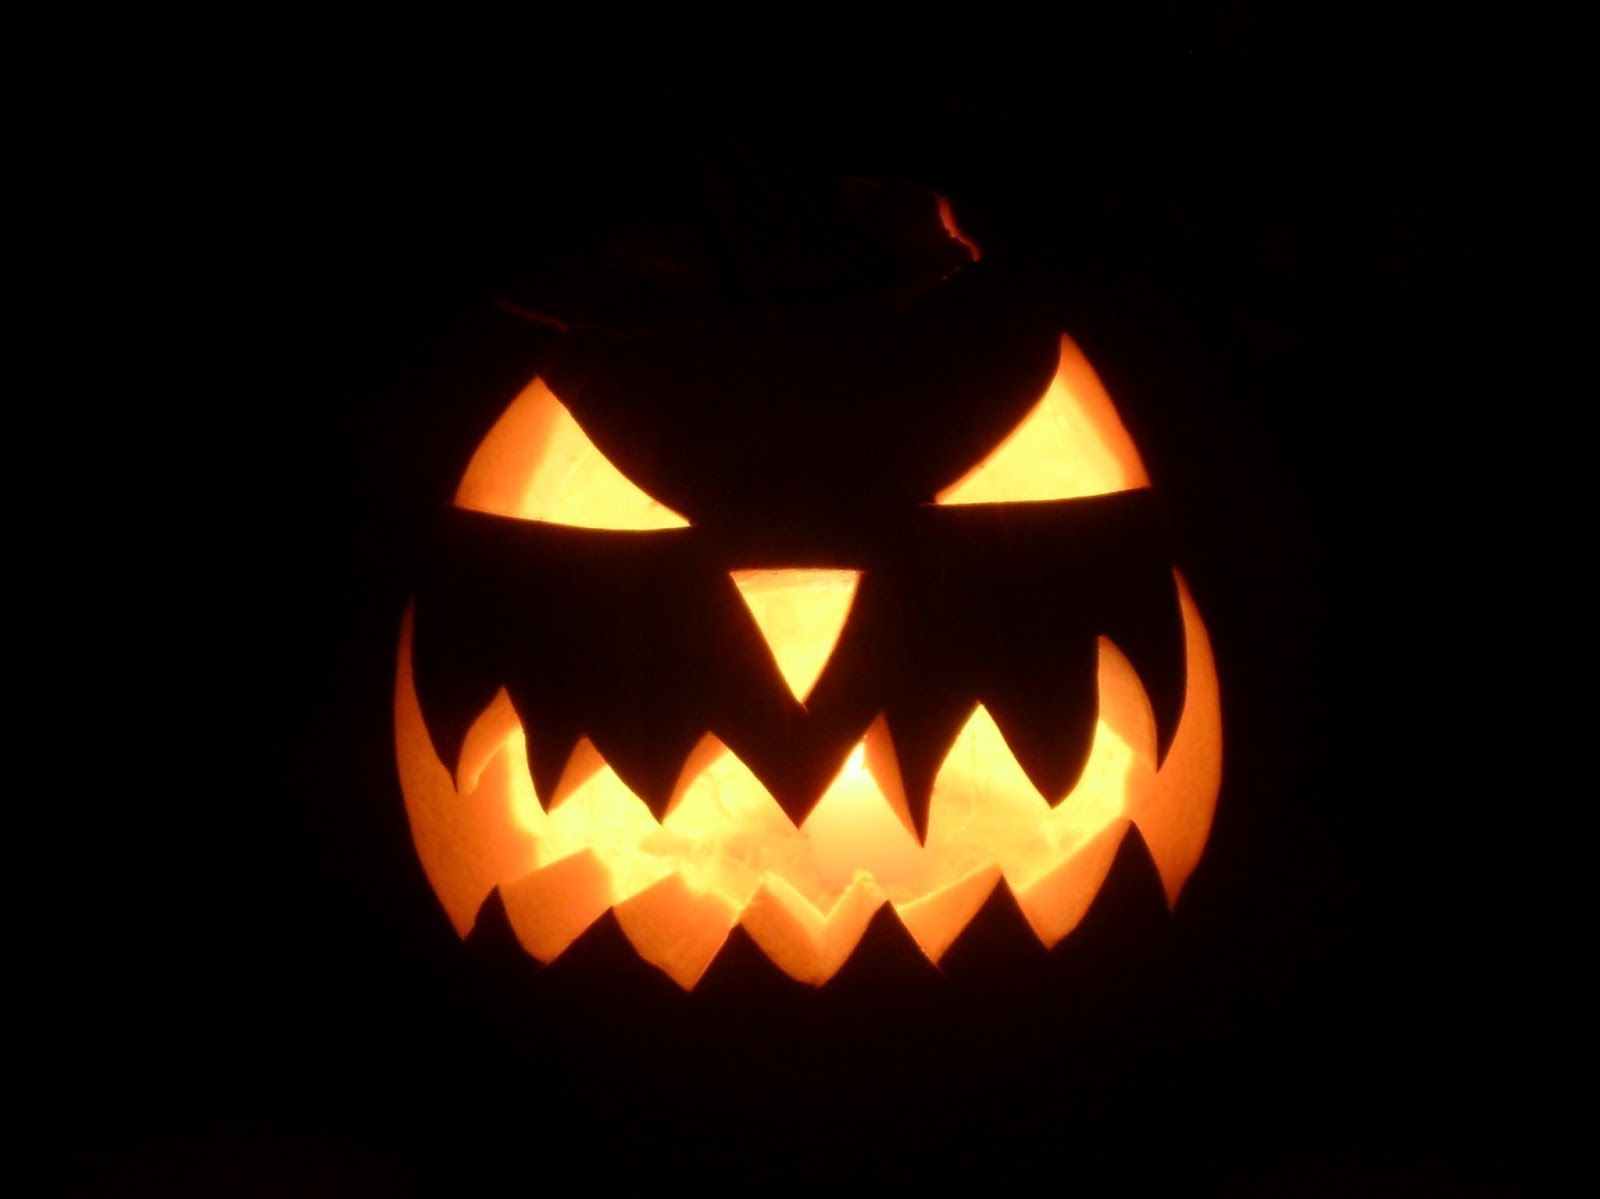 Simple Silly Scary Jack O Lantern Faces Images Pictures Wallpapers 6 Jpg 1 600 1 199 Pixels Jack O Lantern Jack O Lantern Faces Pumpkin Faces